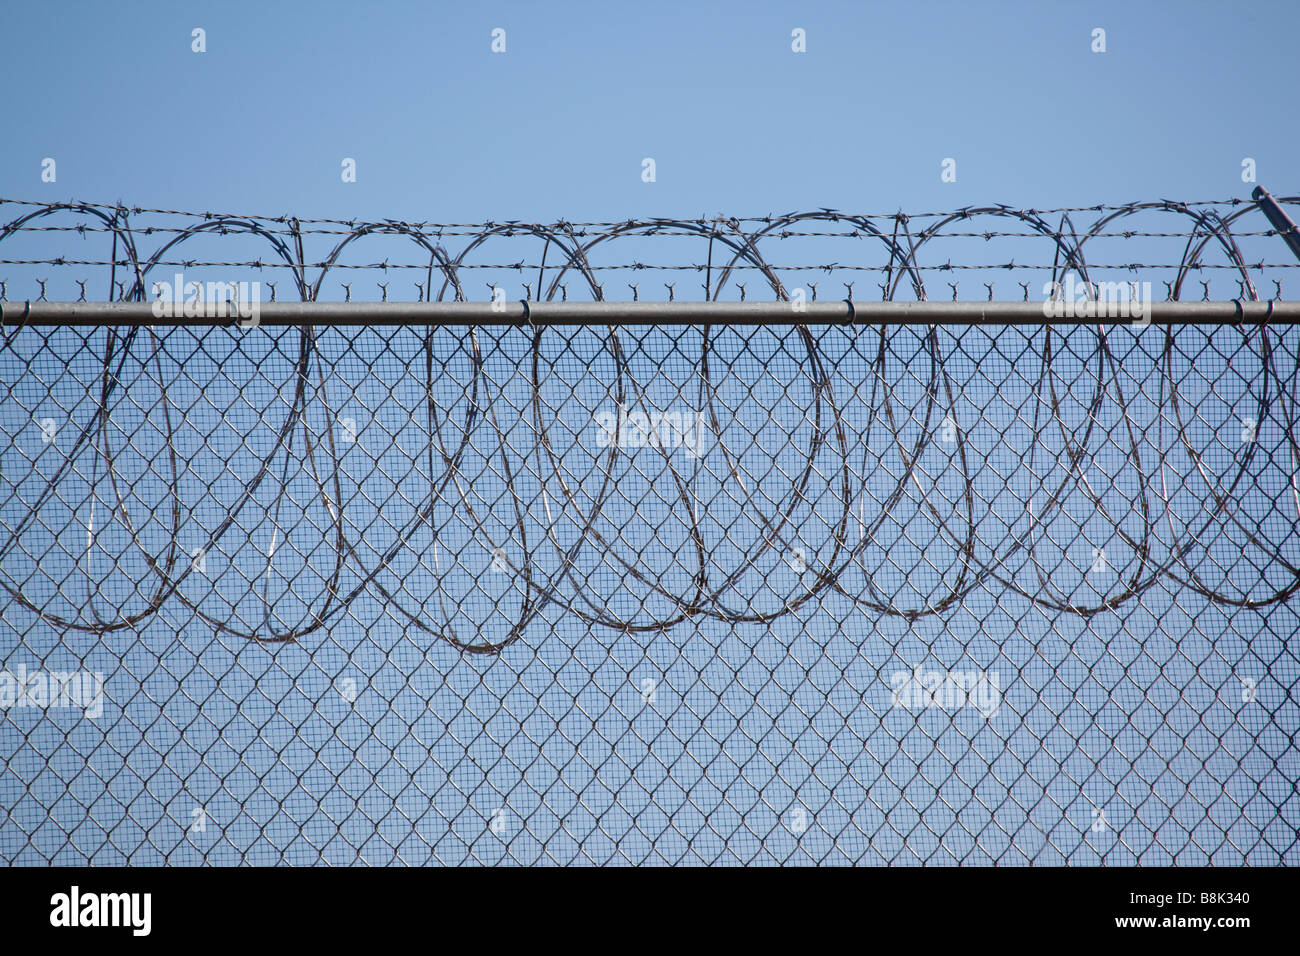 Barbed wire security fence surrounding a detention center - Stock Image